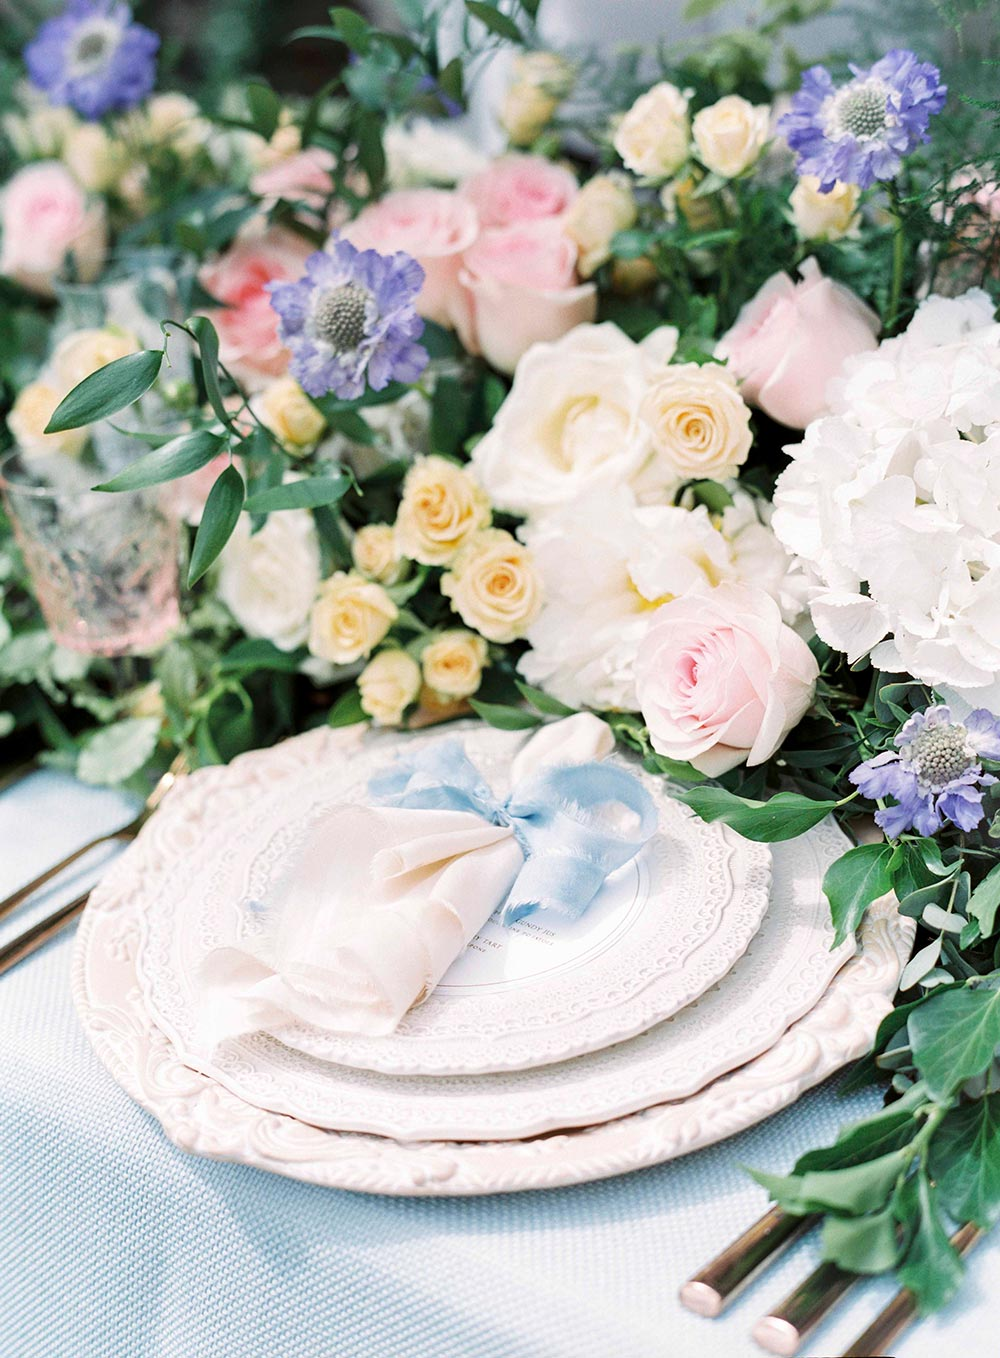 lush pastel wedding flower centerpiece and chic place setting